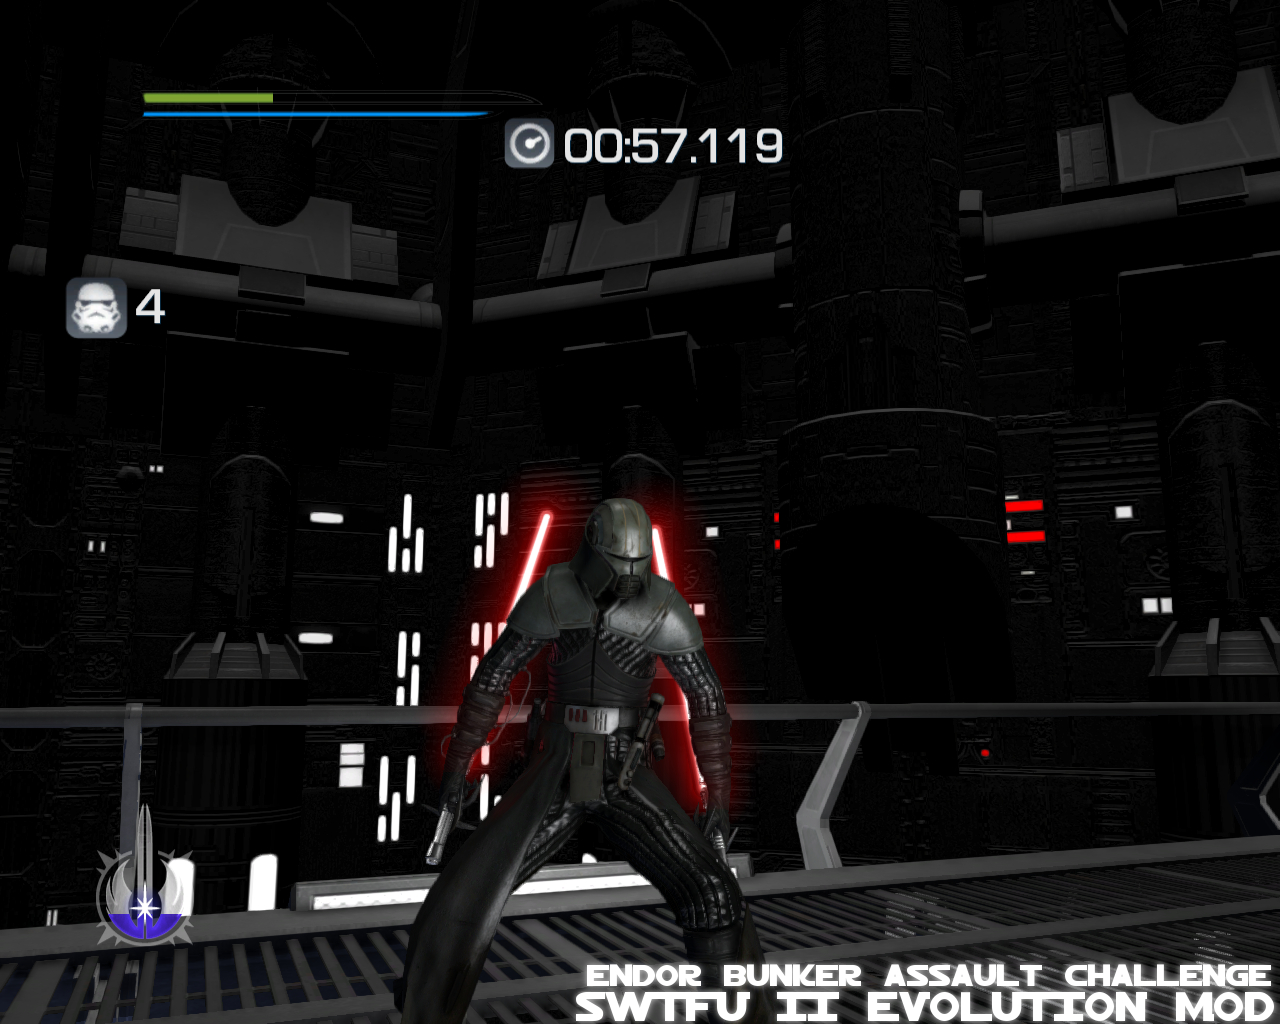 Swtfu Ultimate Sith Edition Mods - Free Software and ...